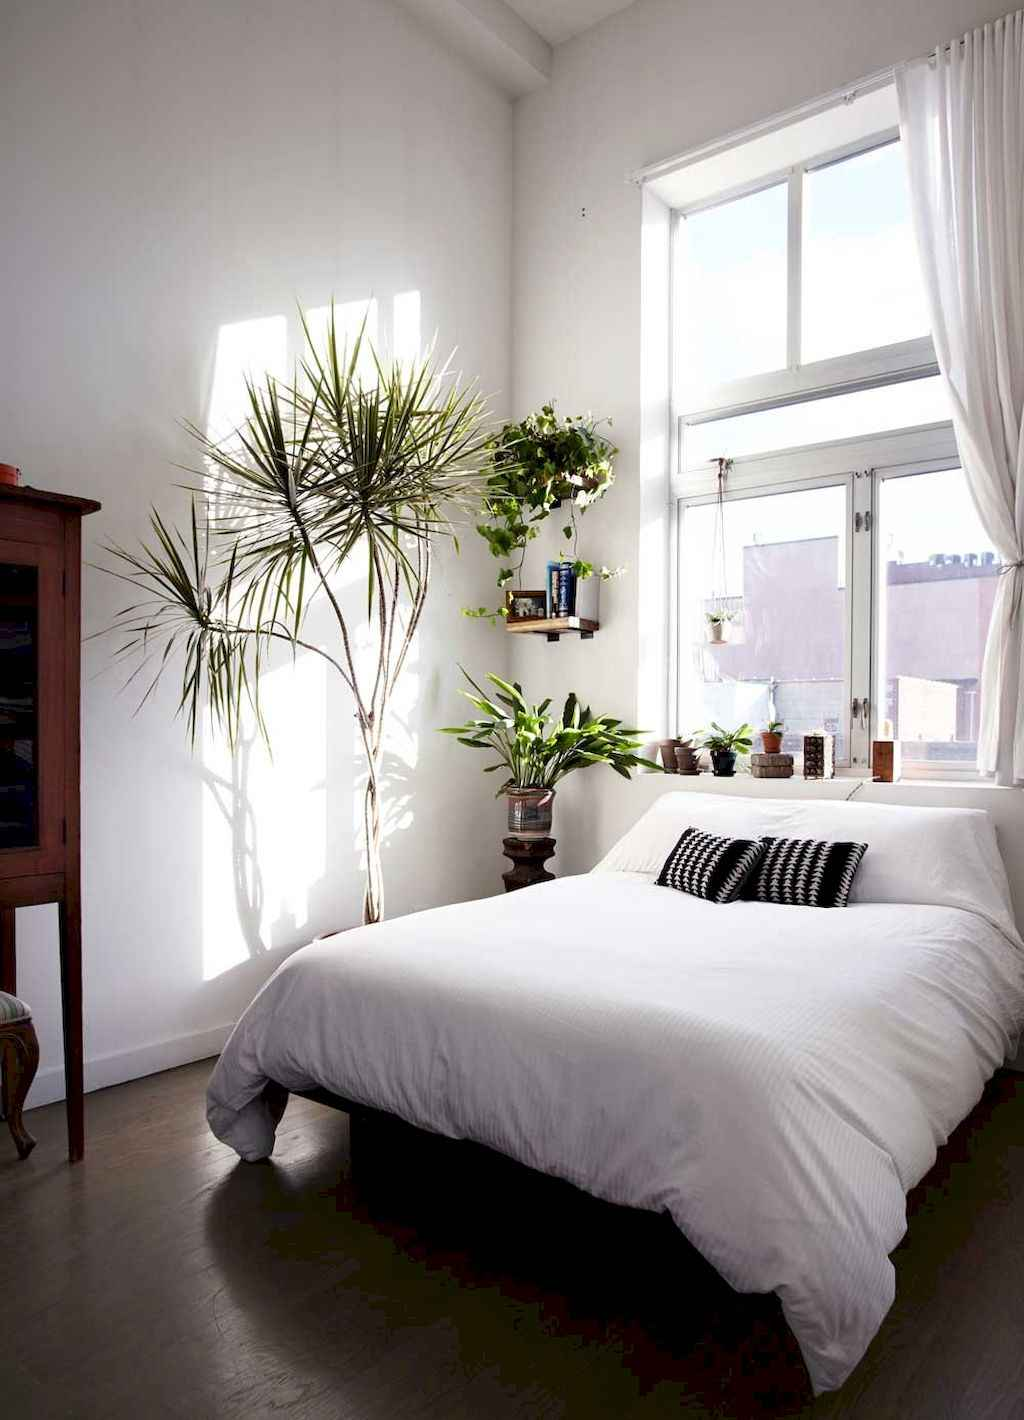 Couples first apartment decorating ideas (52)